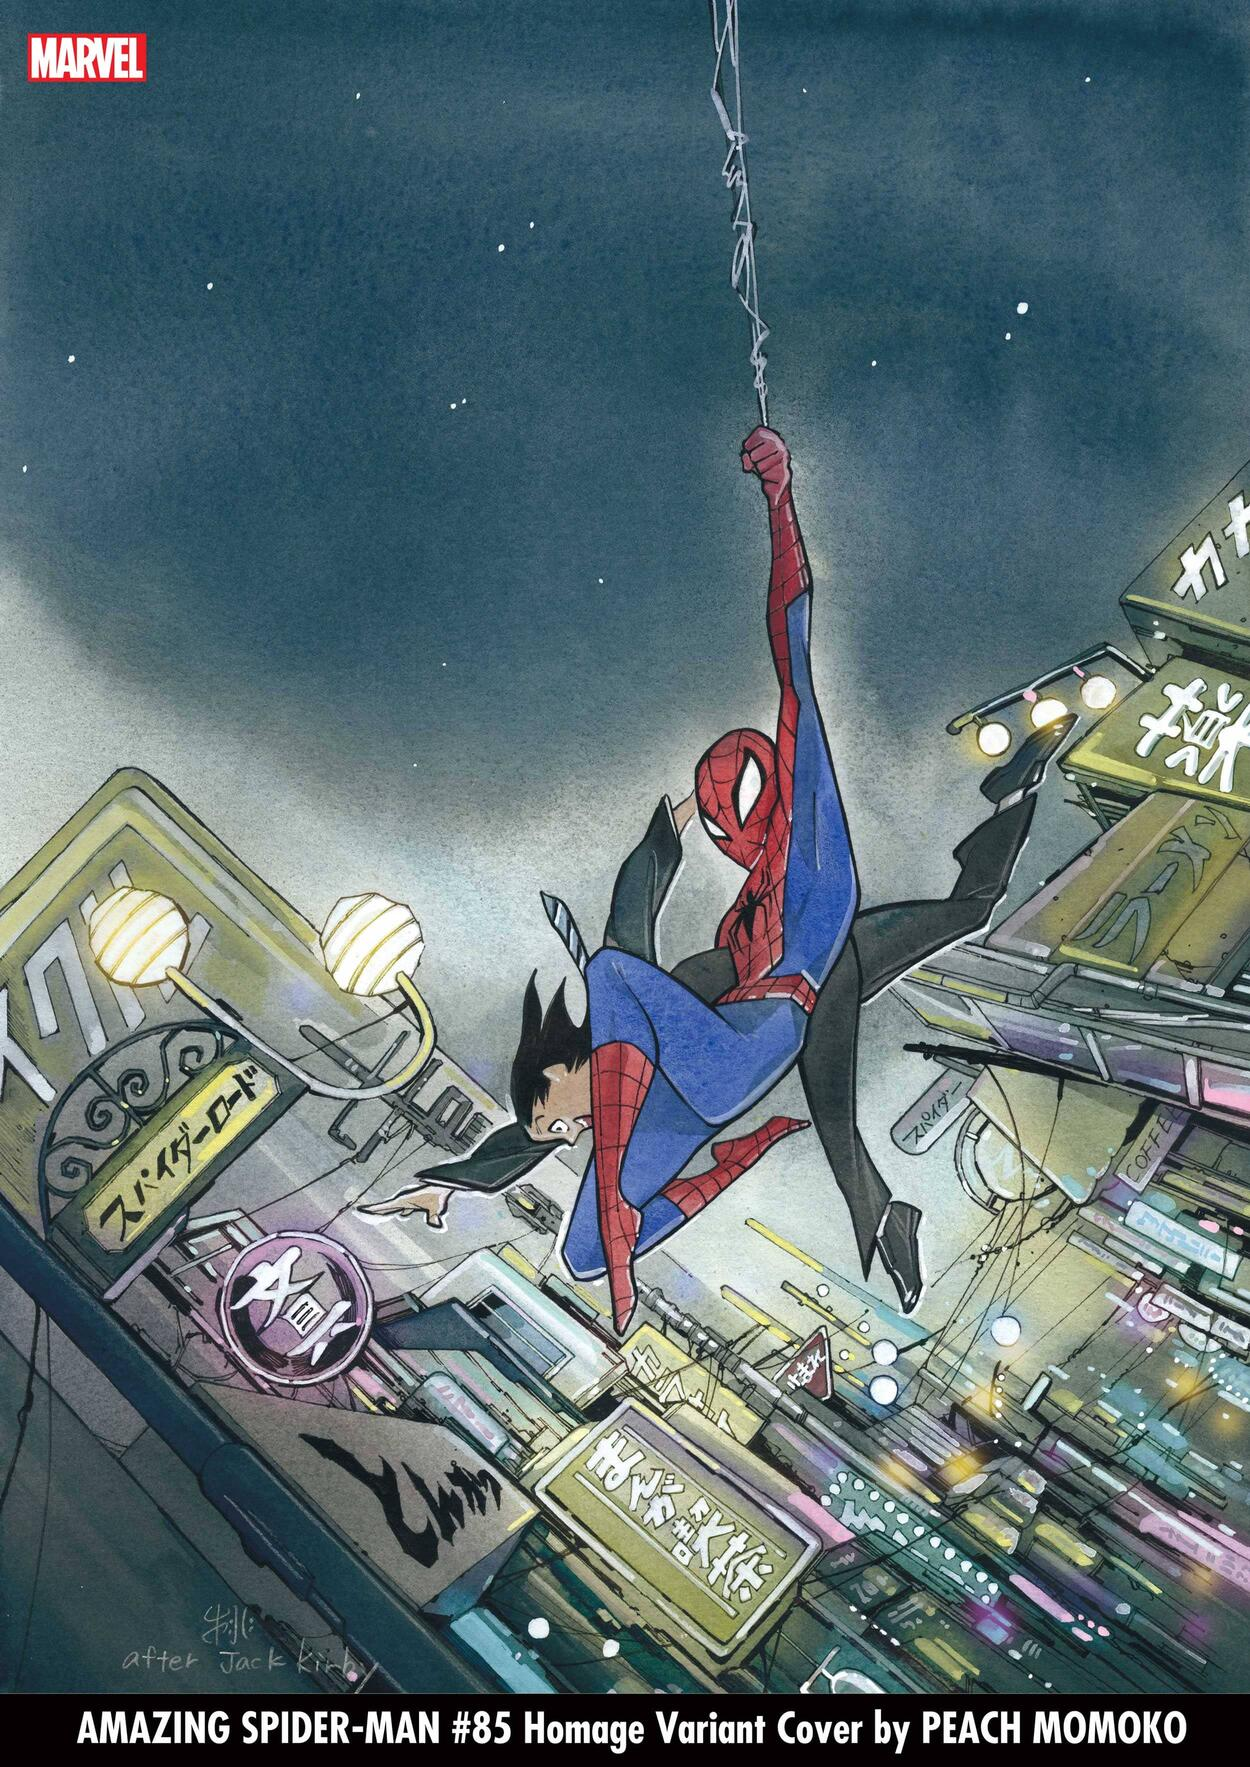 AMAZING SPIDER-MAN #85 Homage Variant Cover by PEACH MOMOKO